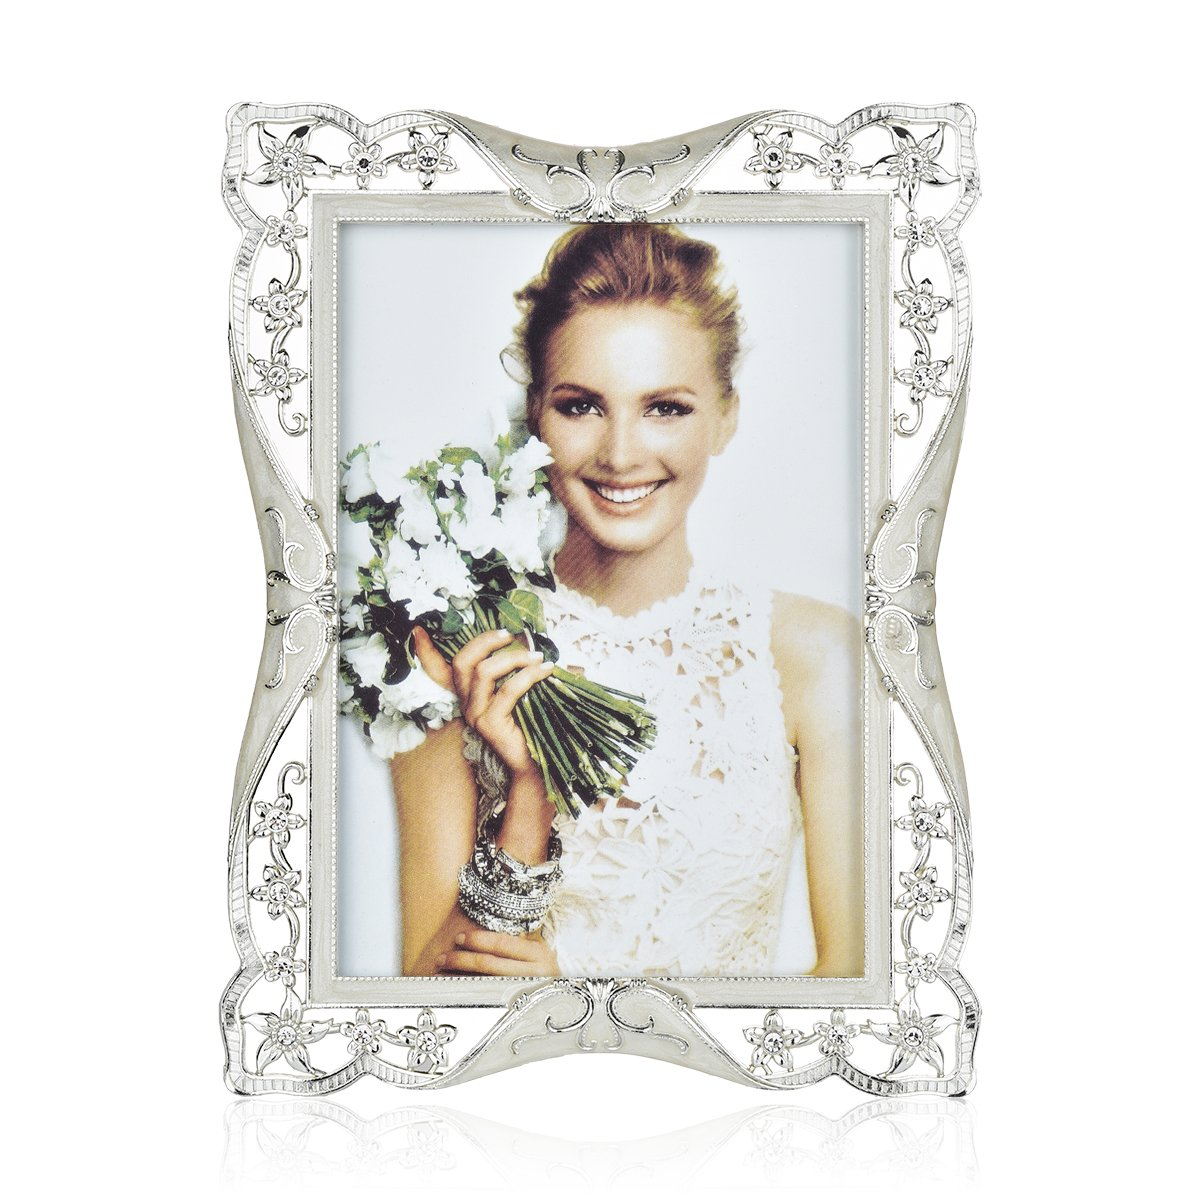 Bison Trading 8x10 Picture Frame | College Photo Frame | Wedding Picture Frame Made of EPOXY and Silver Plated Metal | Inlay Rhinestones Photo Frame Blocks Display Picture for Family Love Baby